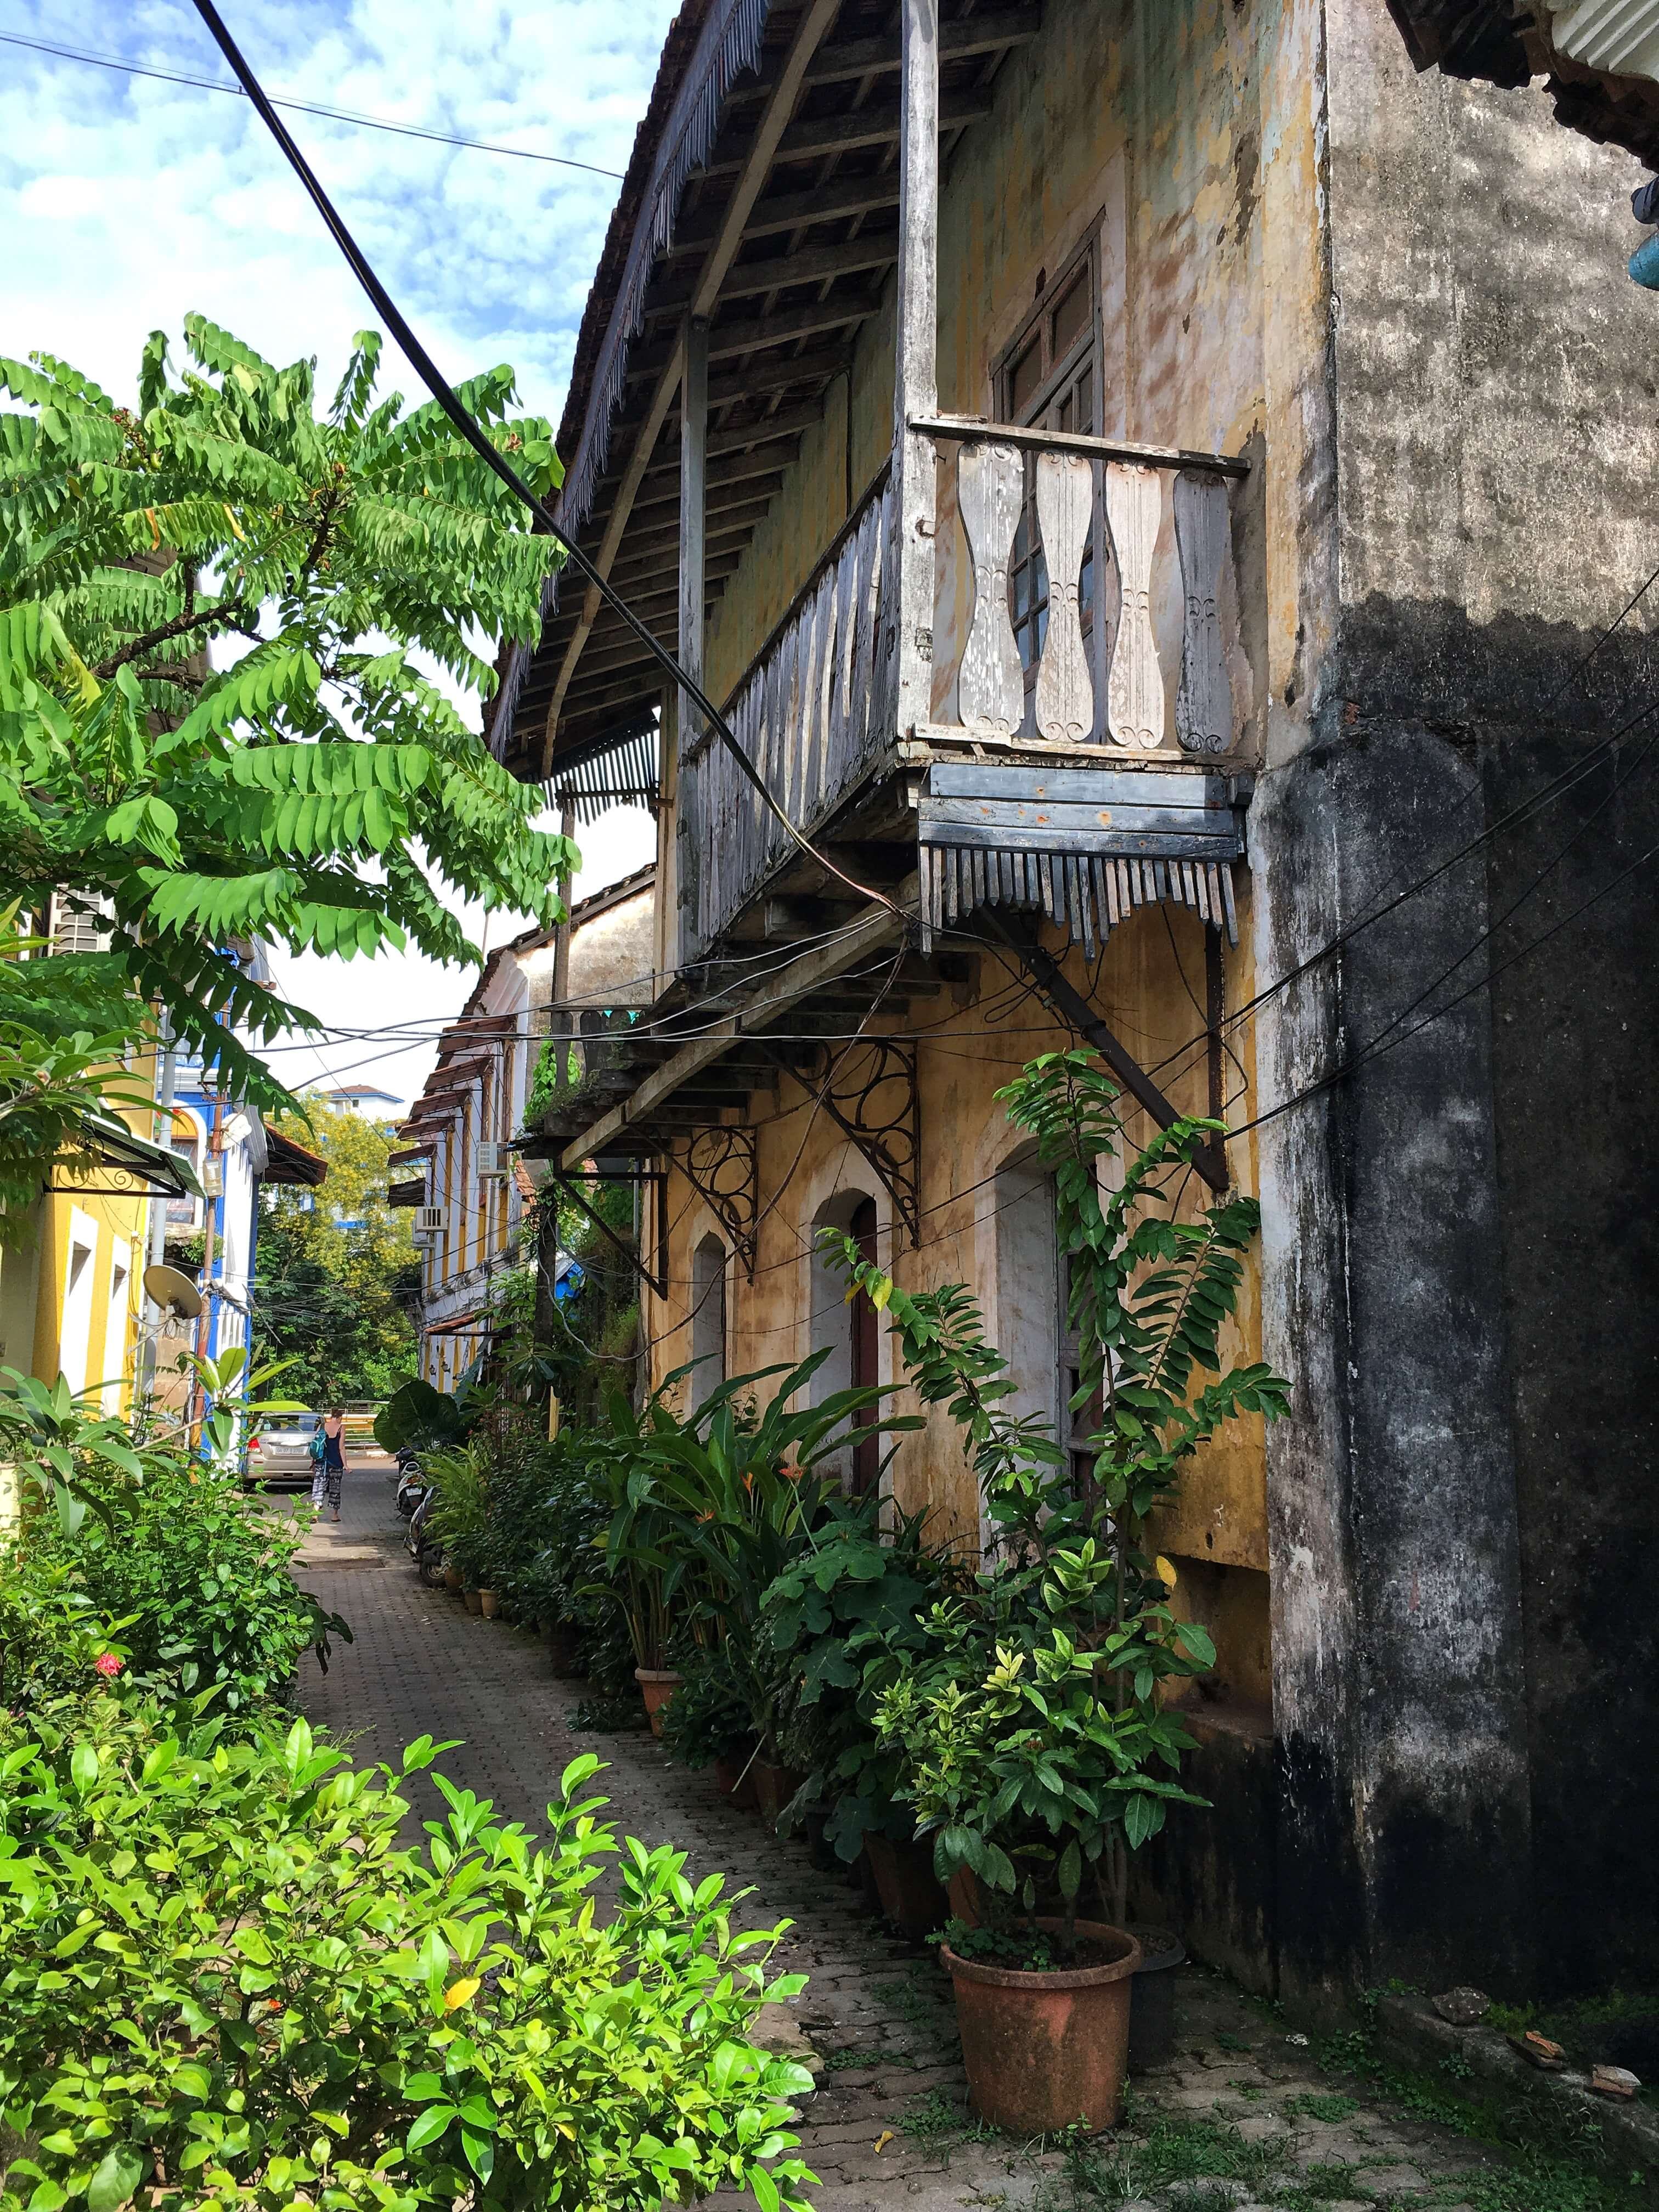 Old building with wooden balcony and plants in Panaji, Goa